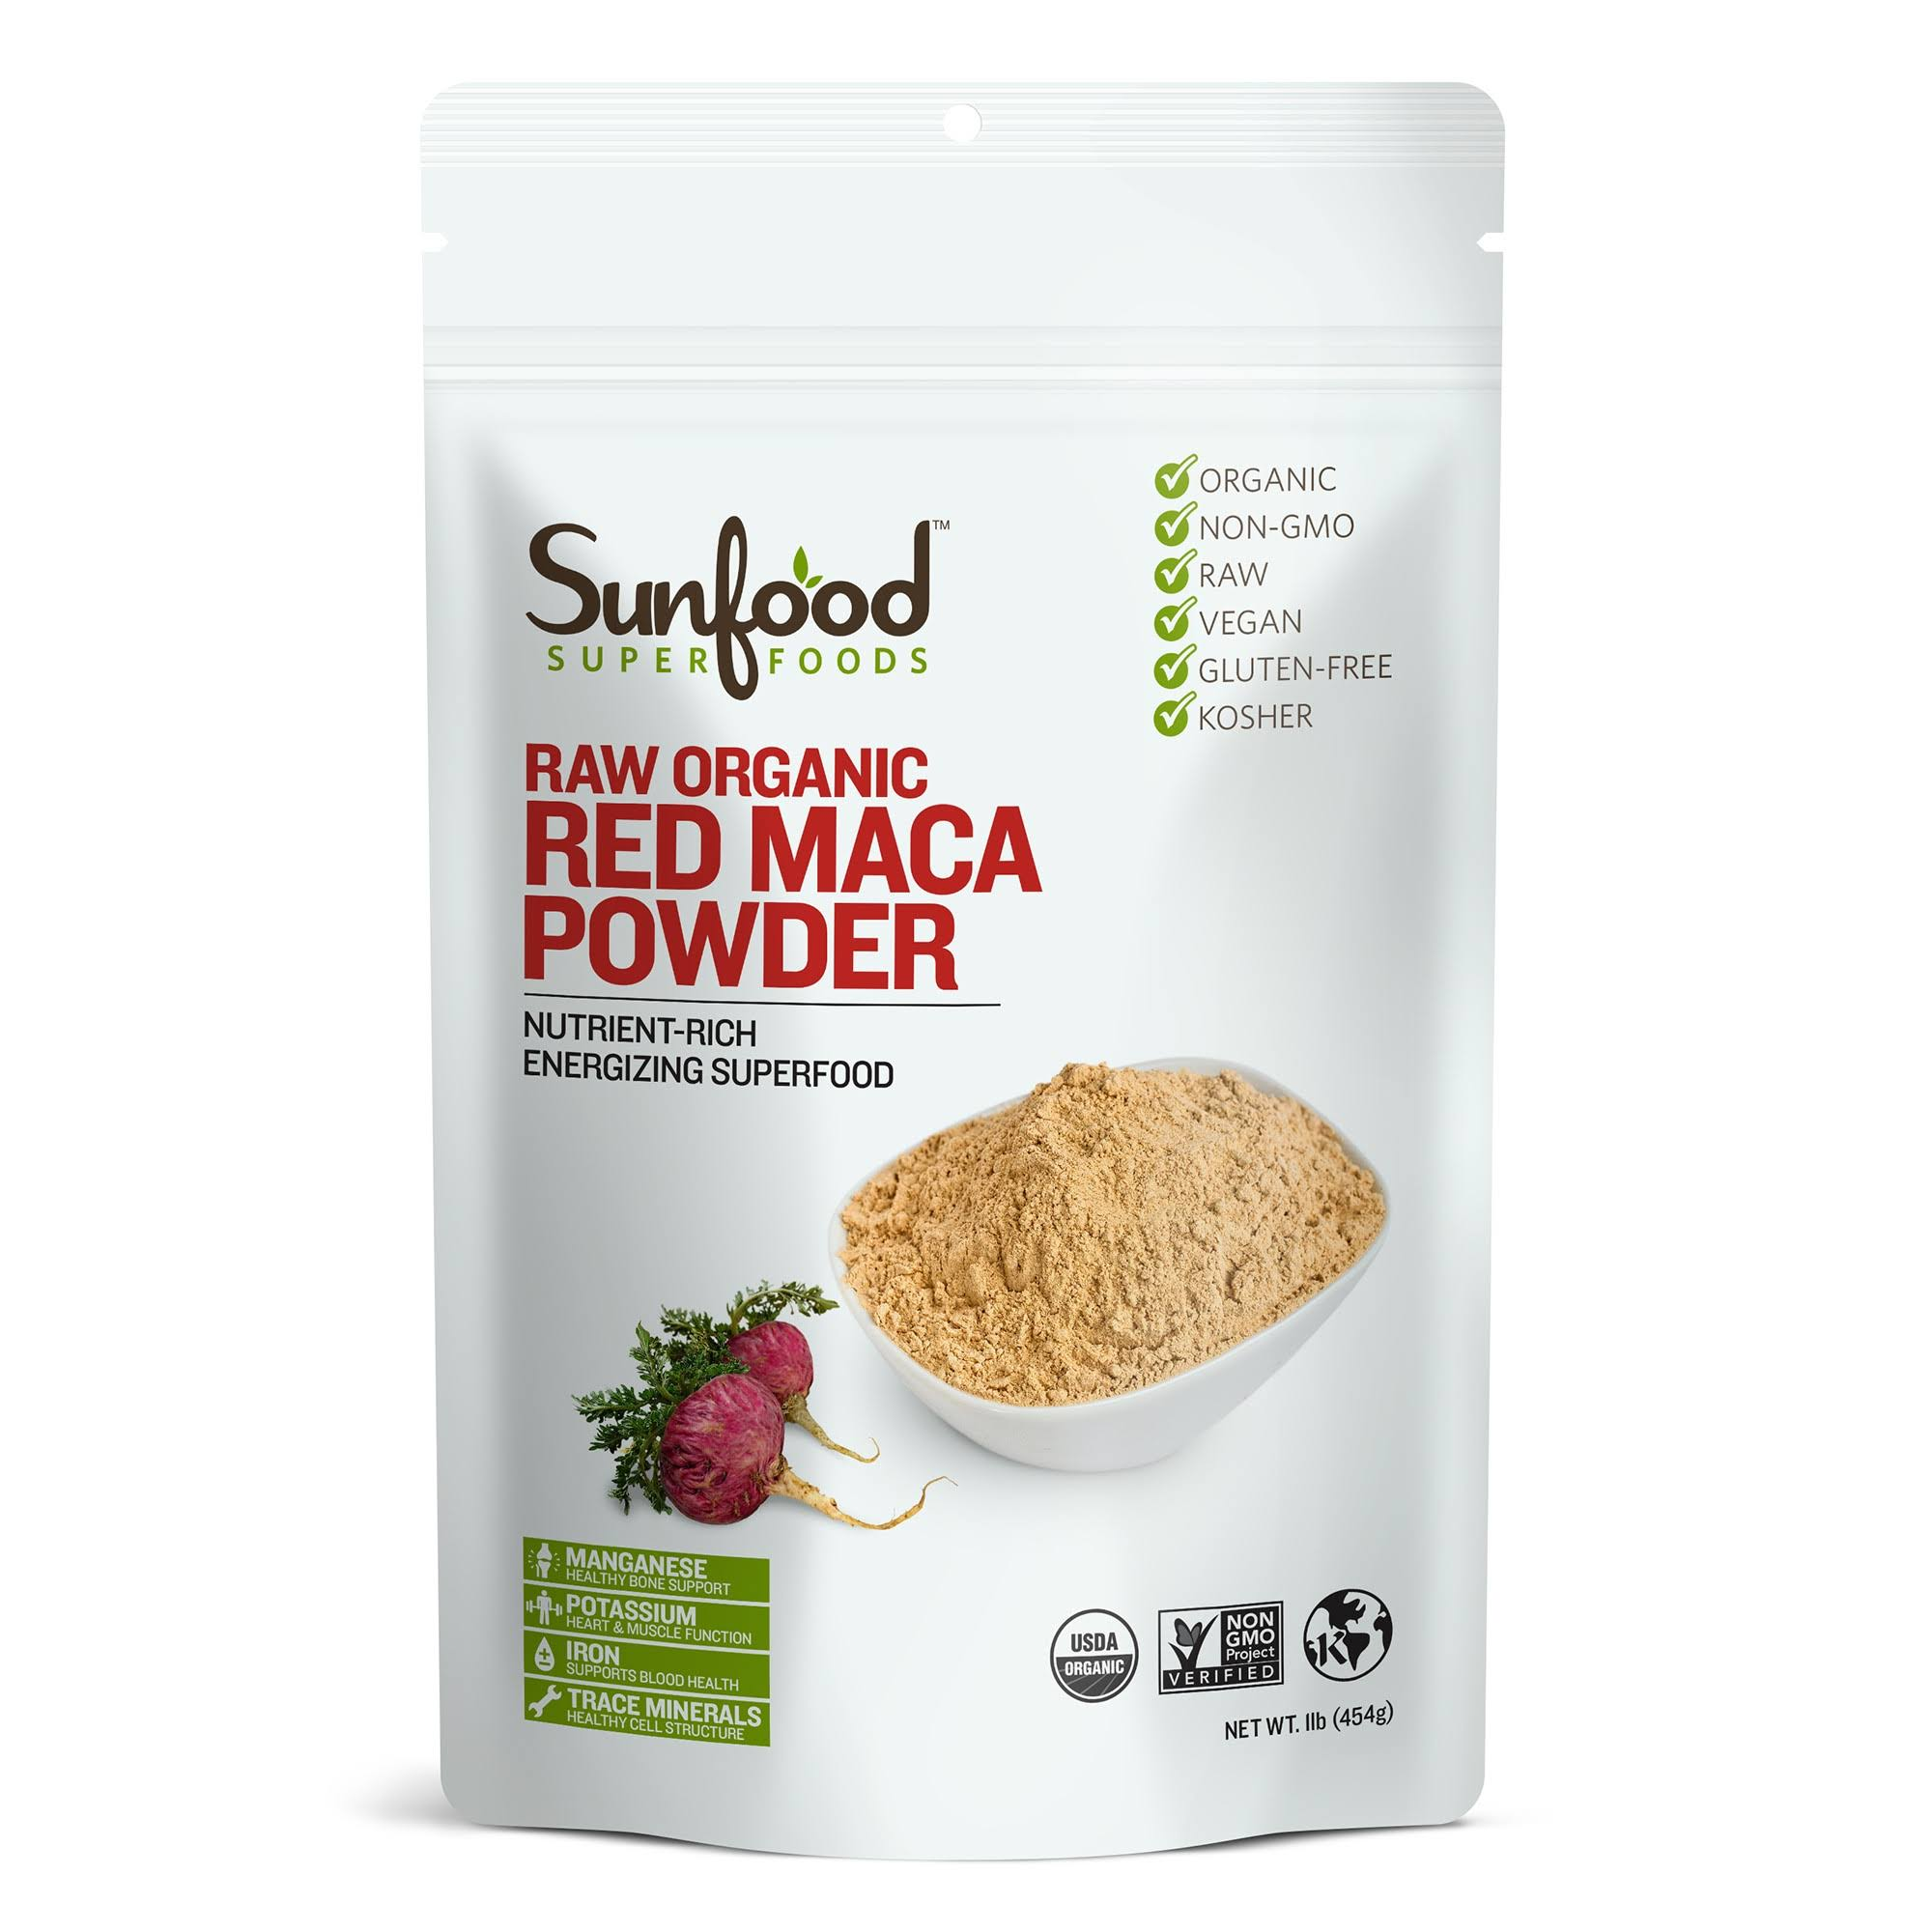 Sunfood Red Maca Powder - 1lb